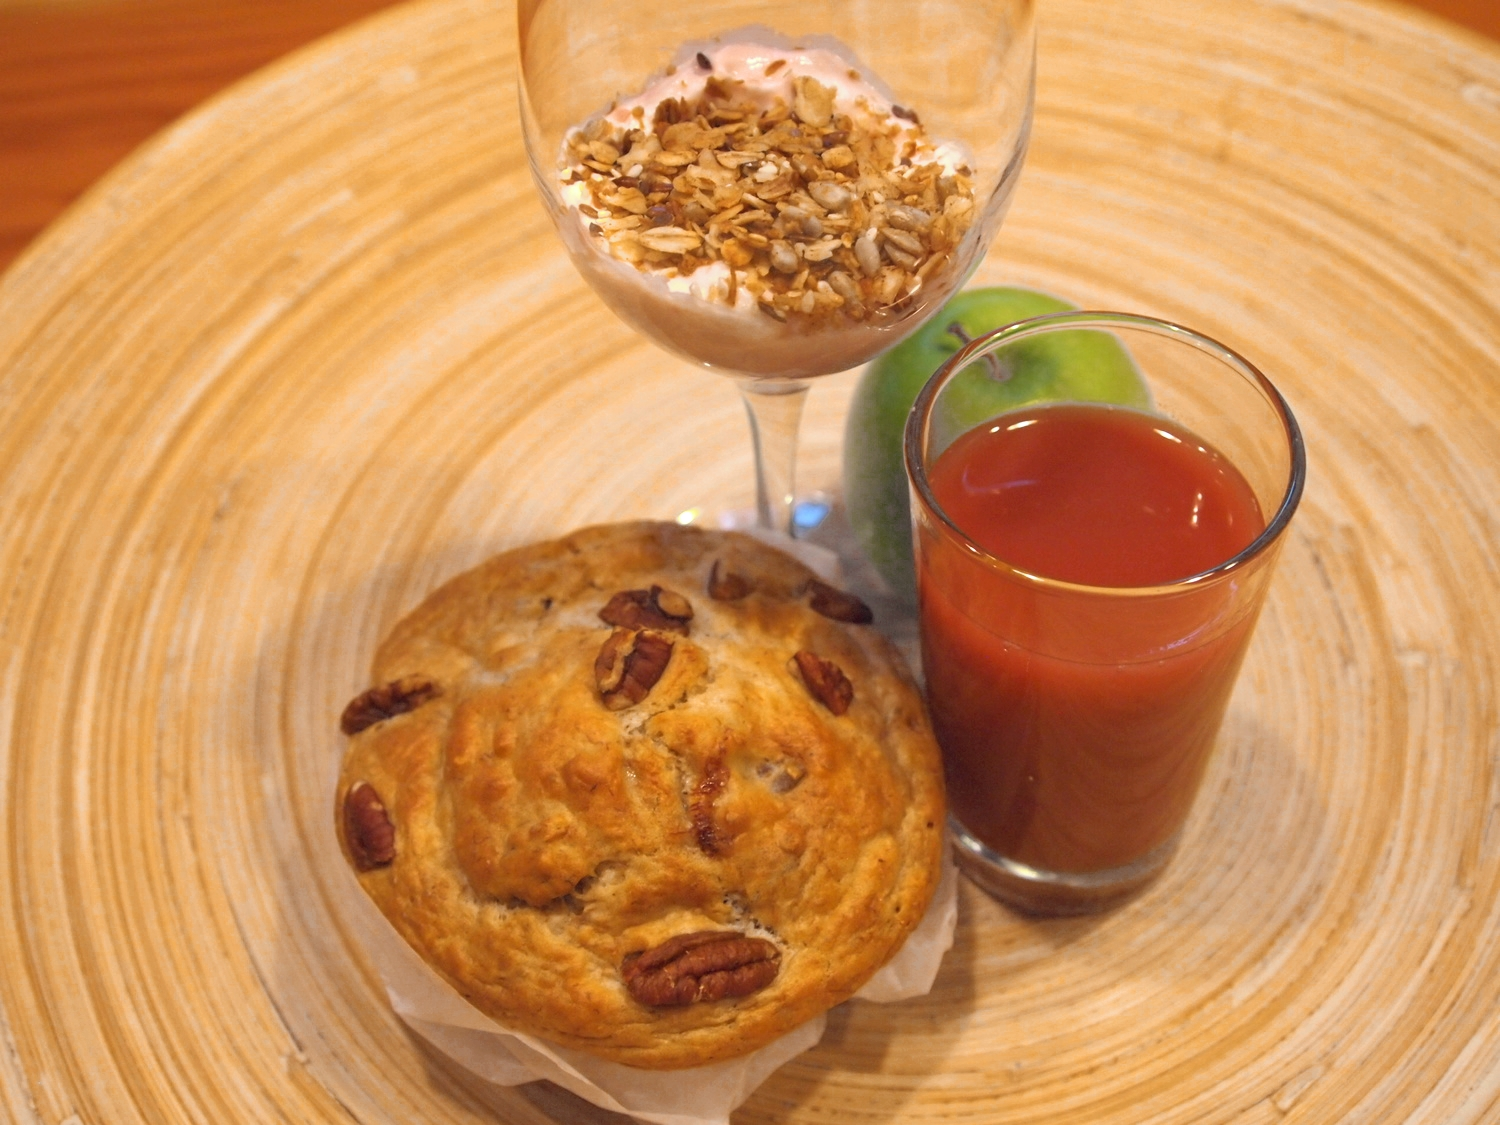 The Pacific Sands' CAD $11 breakfast delivery program sources locally-made muffins, granola, etc.